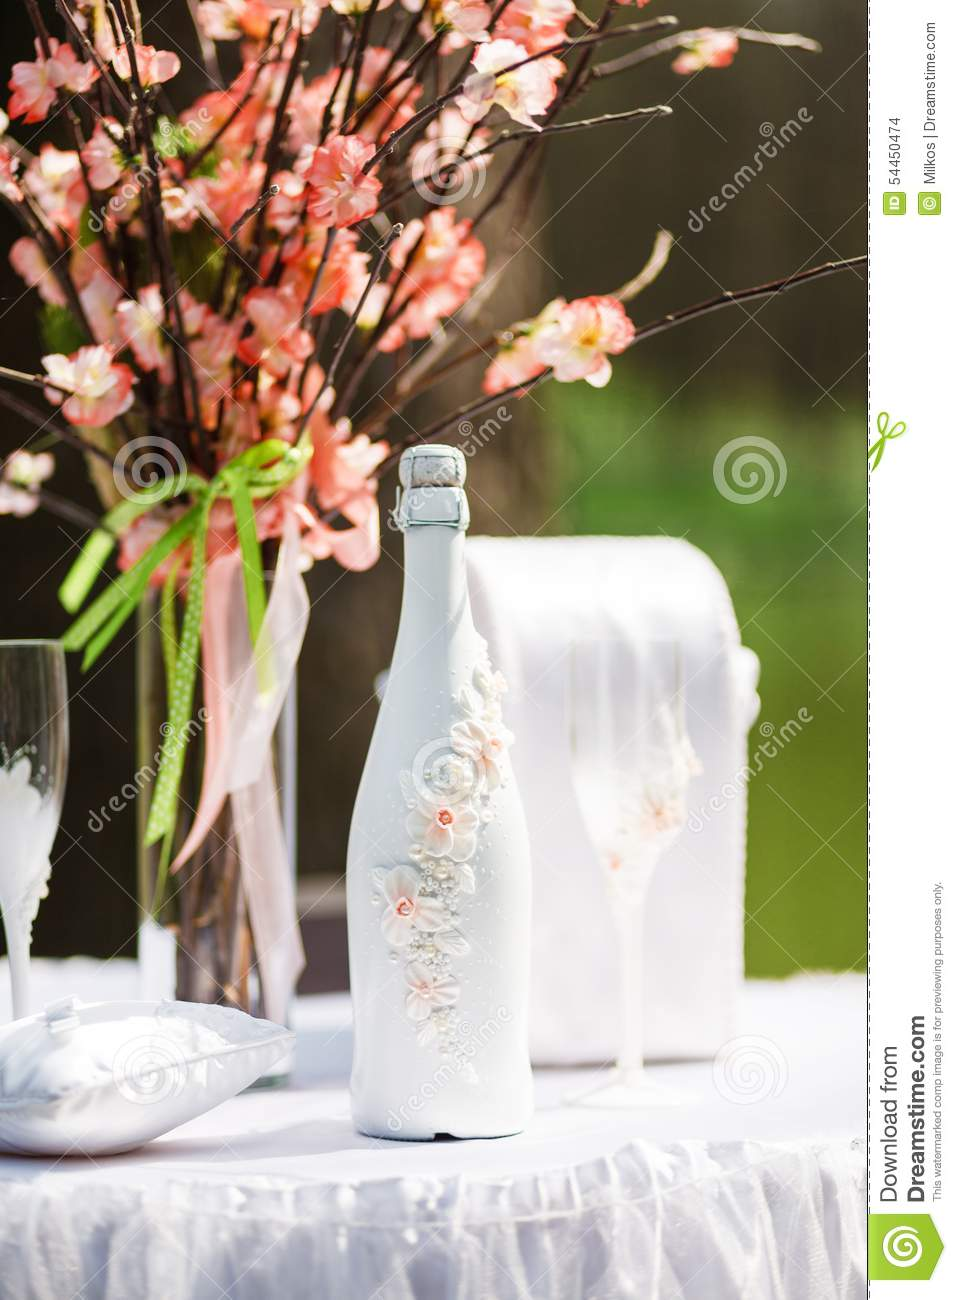 Bottle Of Wedding Champagne Decorated With Flowers Stock Photo